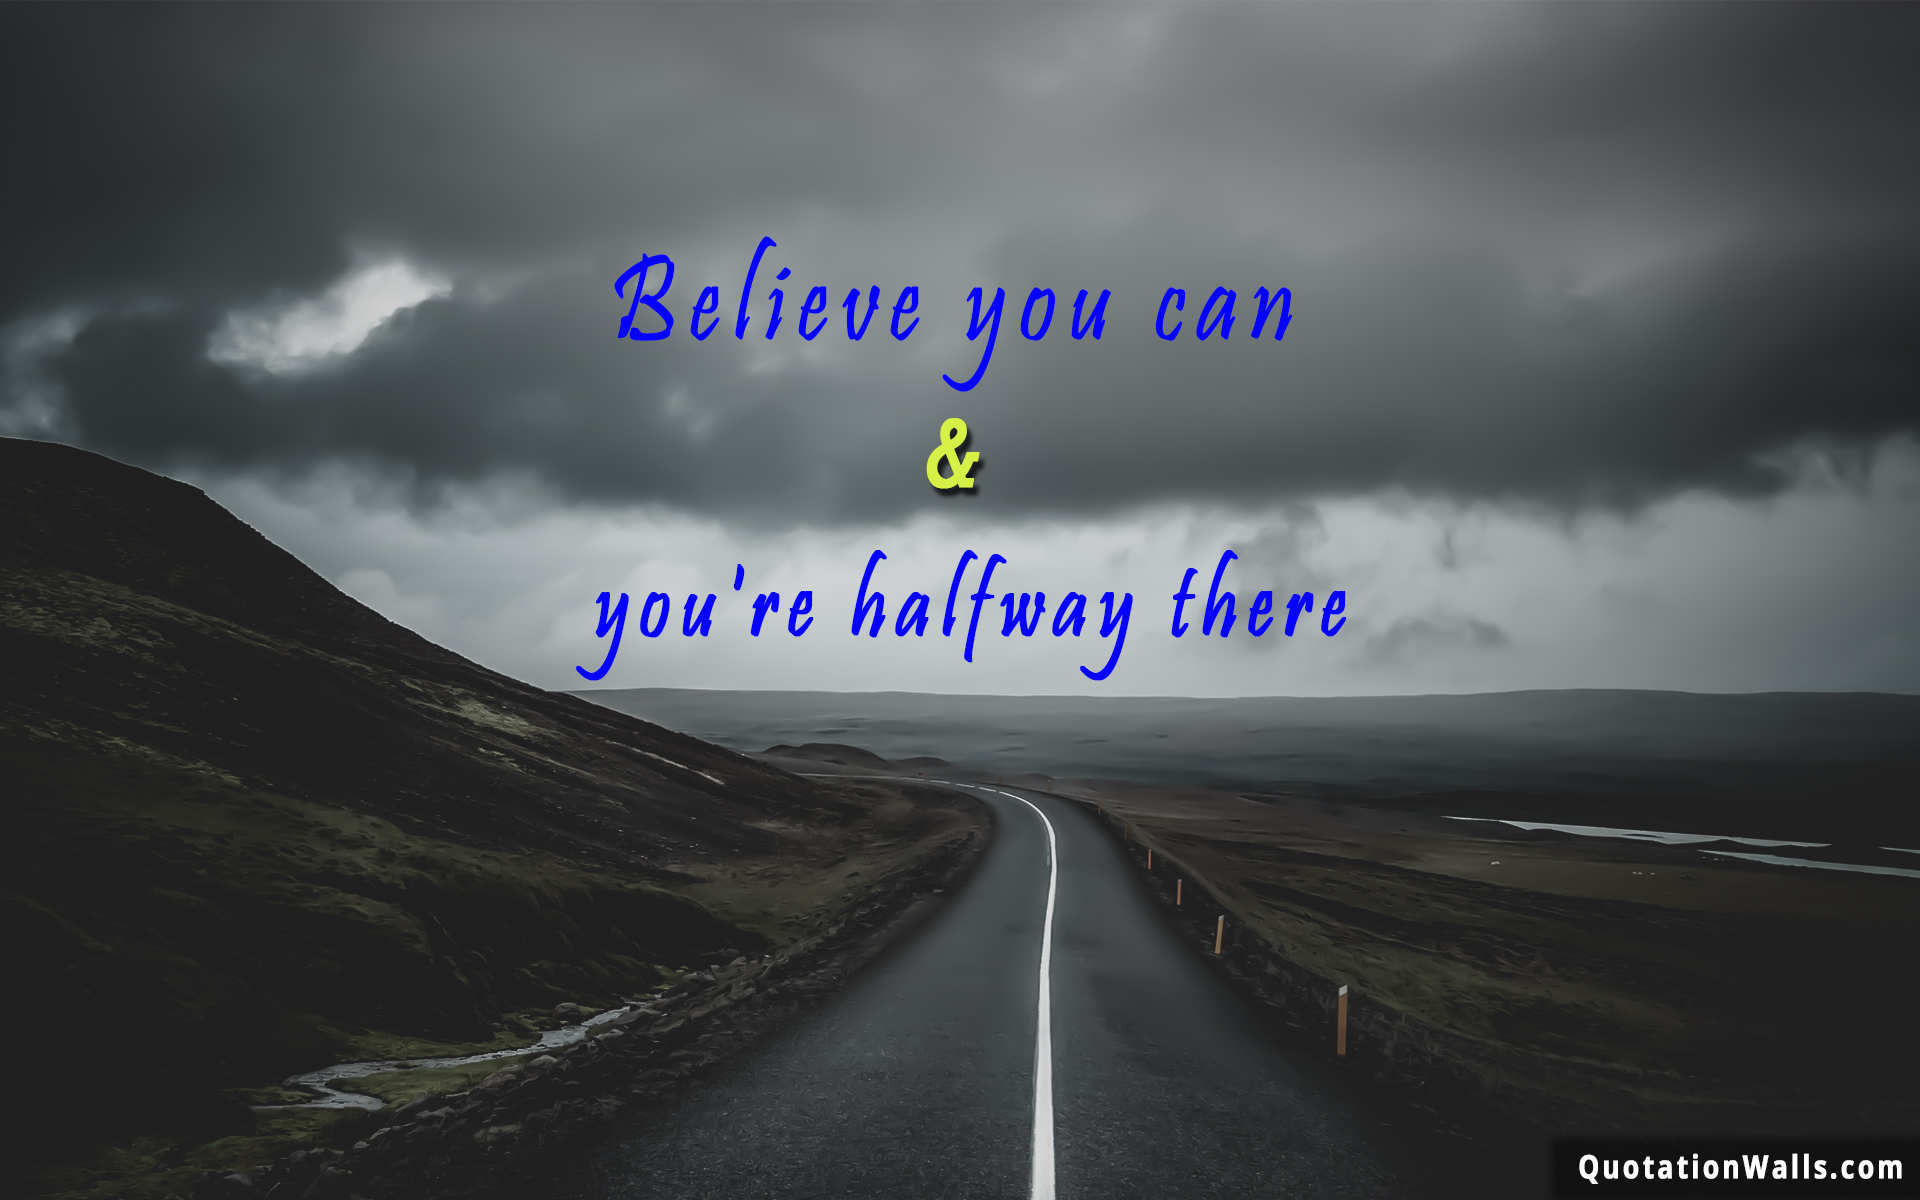 Travel Quotes Images Wallpapers For Desktop Pictures Desktop Backgrounds Hd Photos Free Download